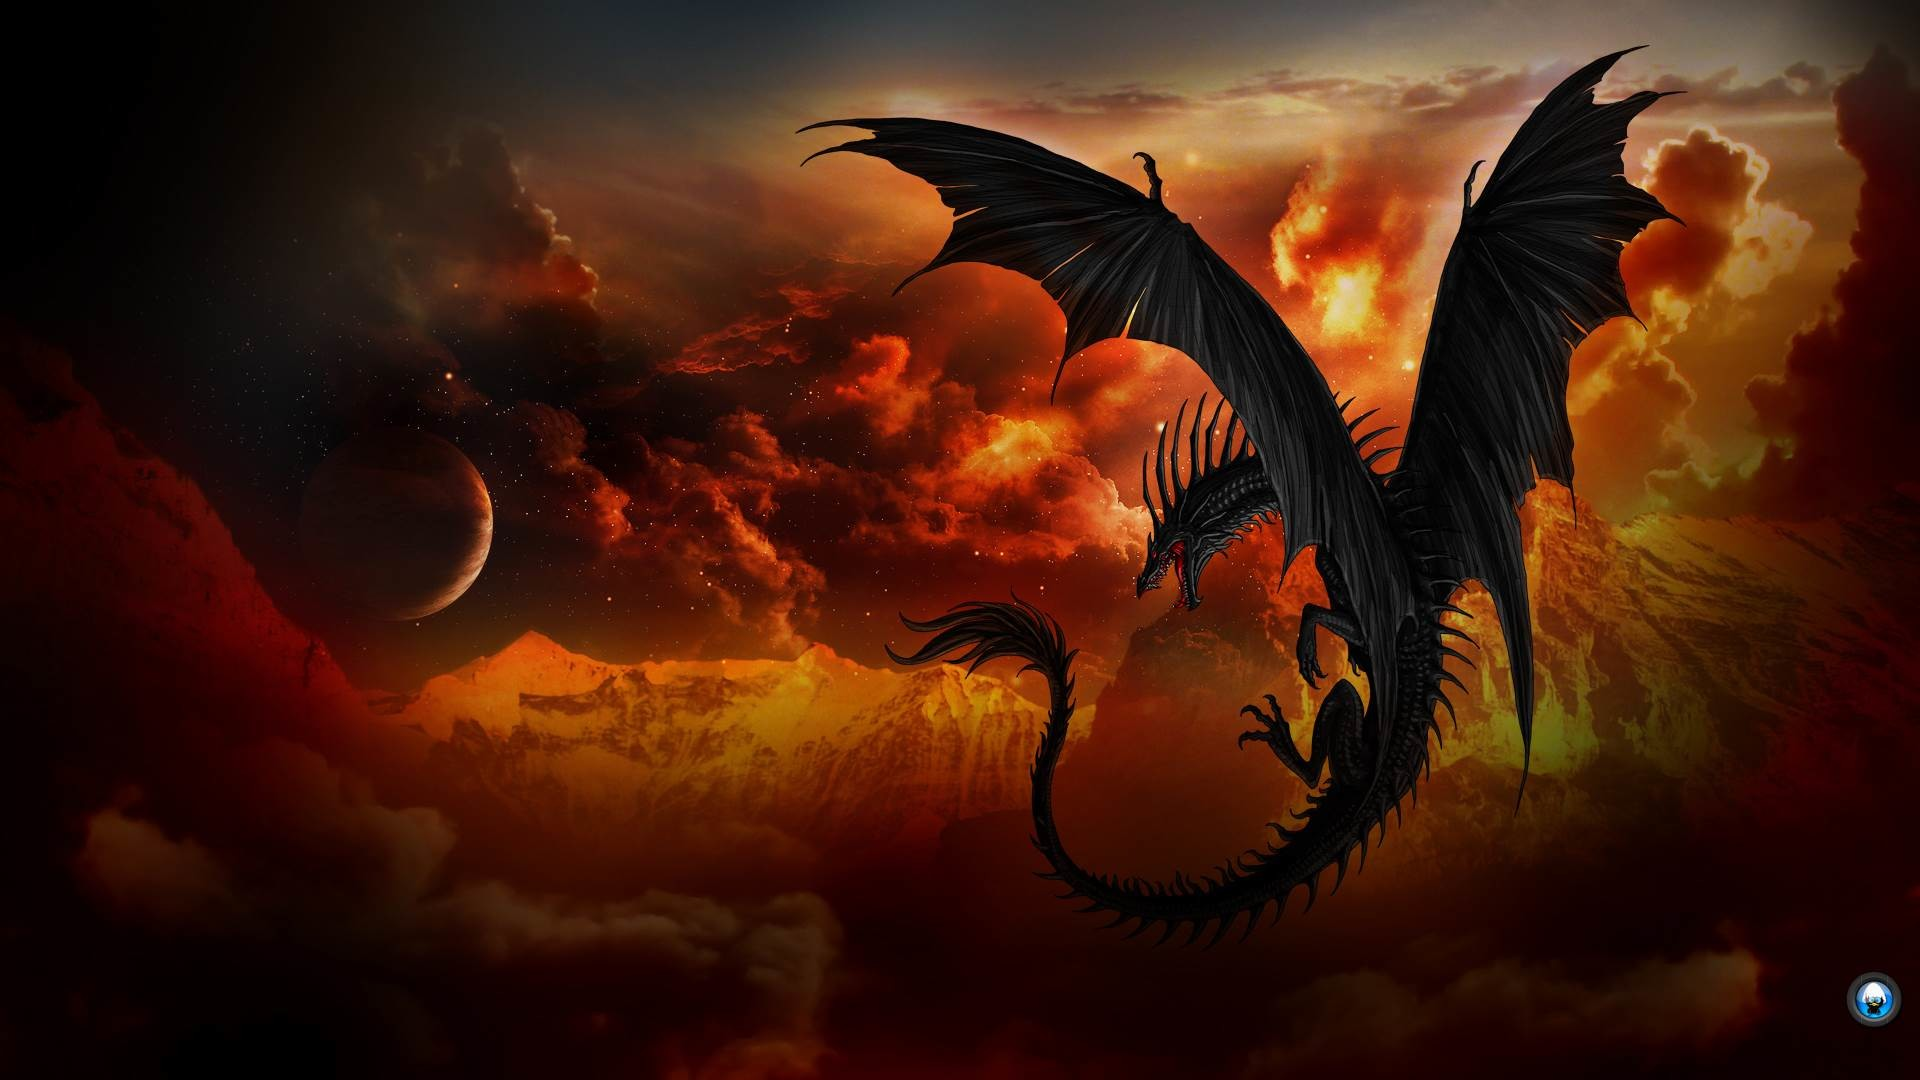 1920x1080 Awesome Dragon Wallpapers Group 1920×1080